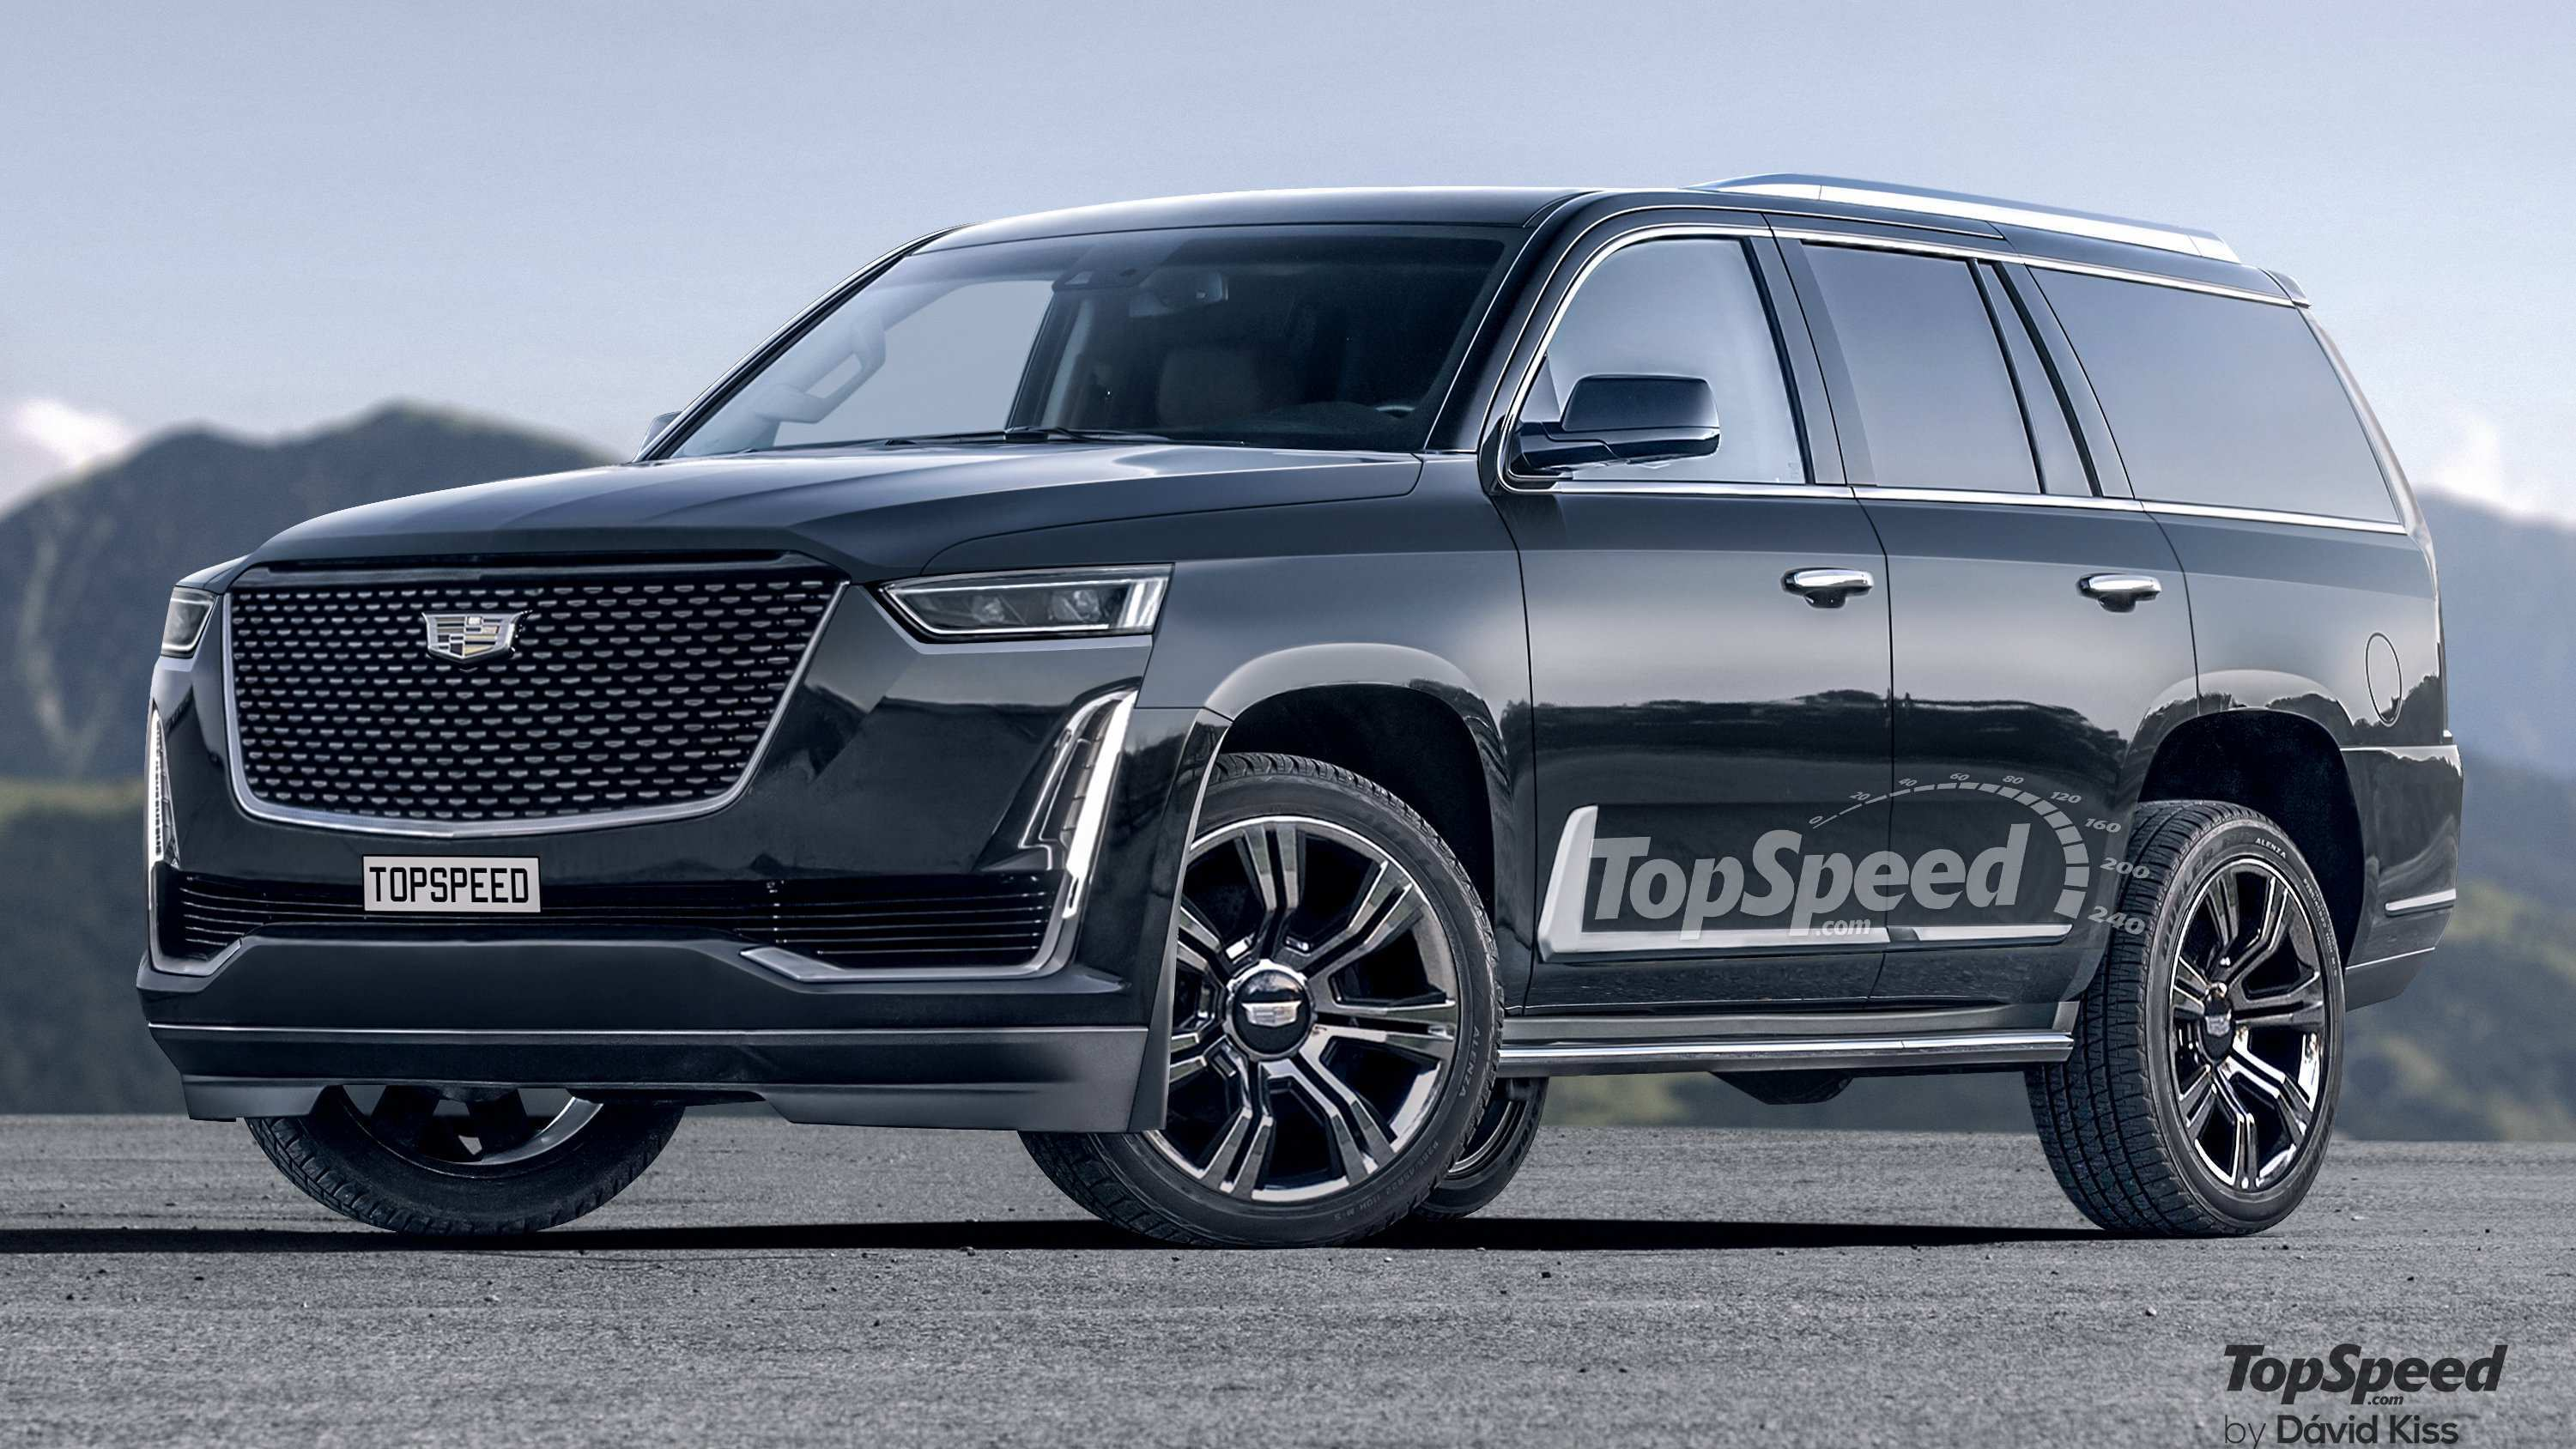 99 Best Review 2020 Gmc Yukon Concept Rumors with 2020 Gmc Yukon Concept